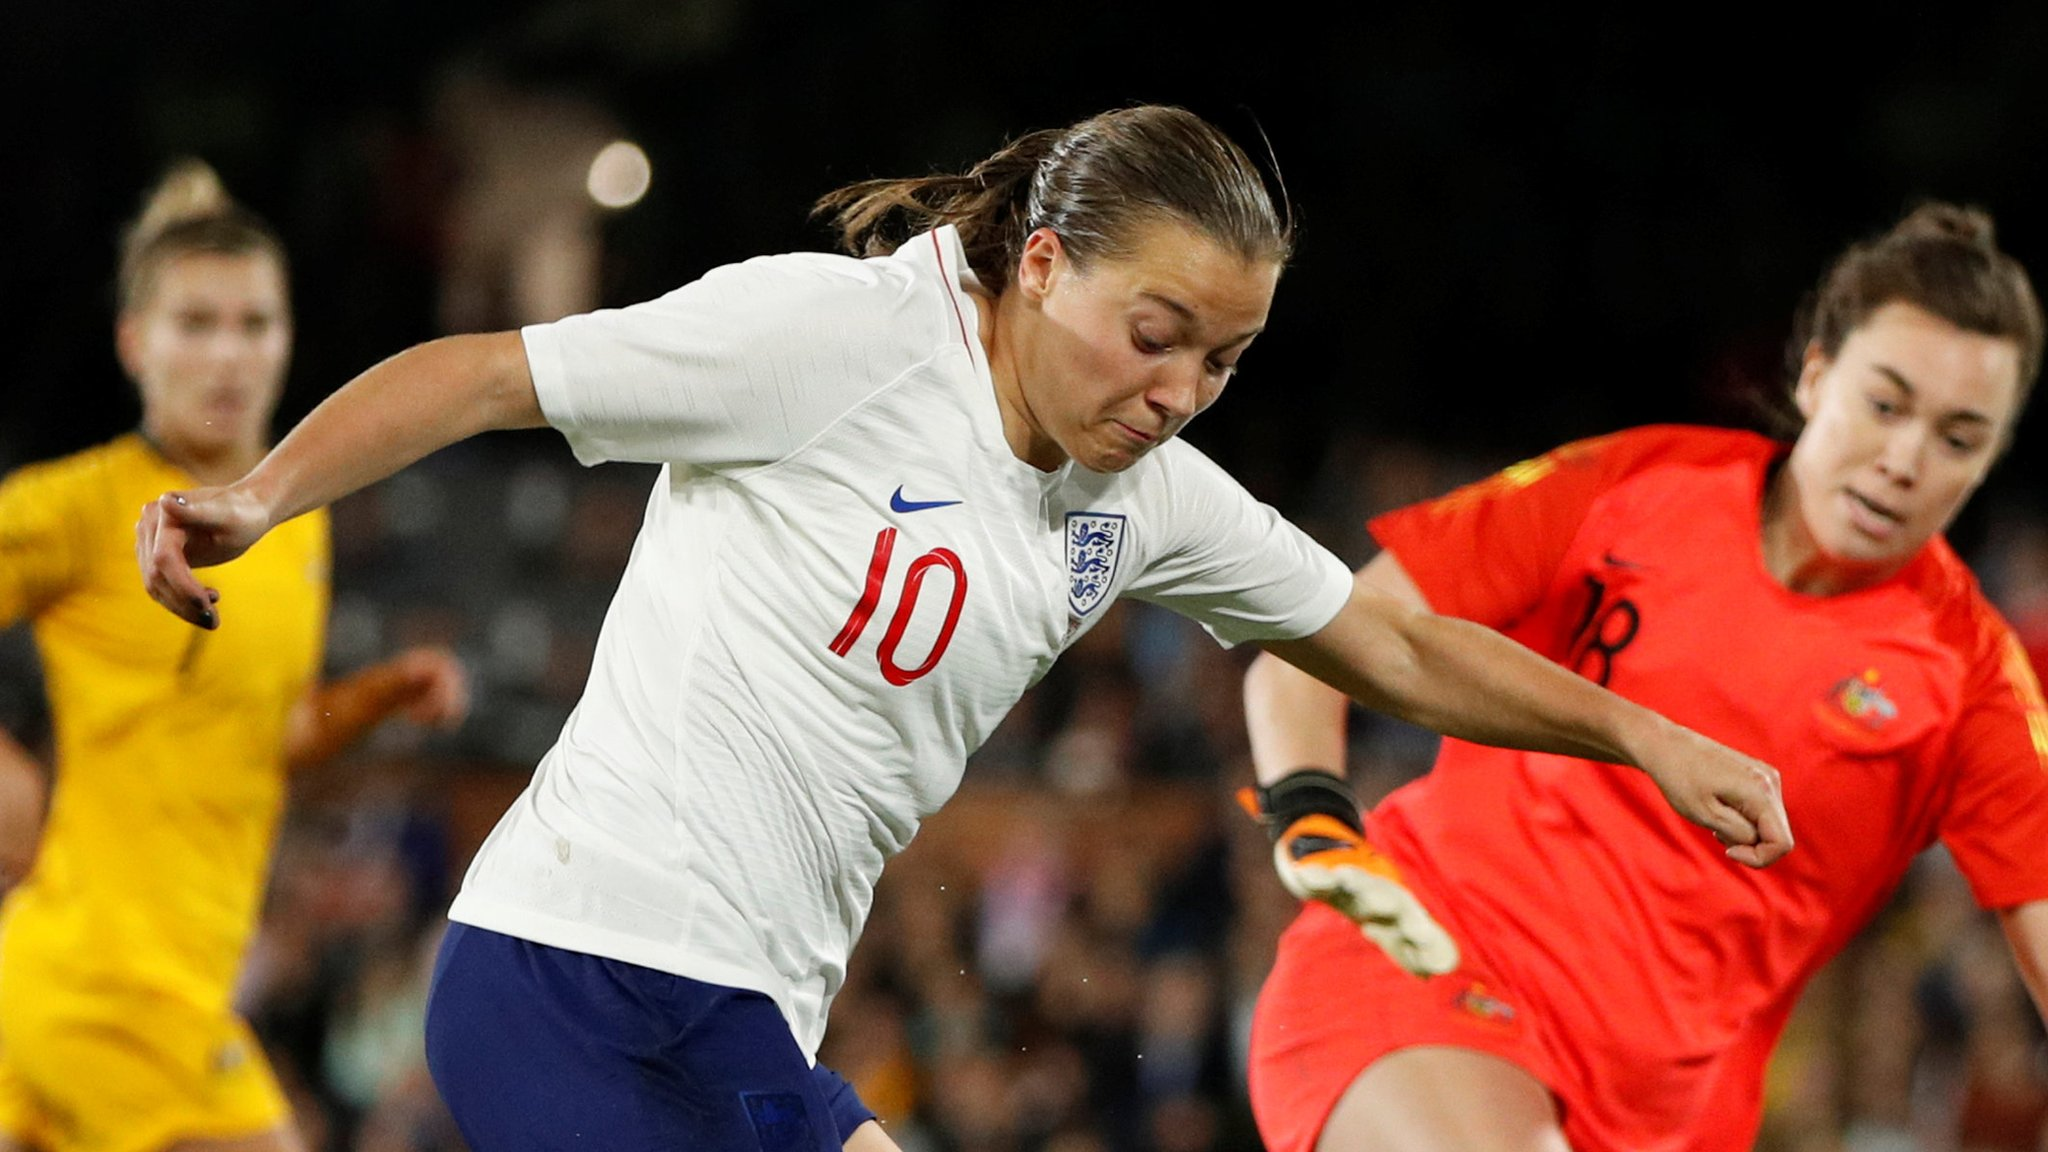 Uefa to increase women's football funding by 50%